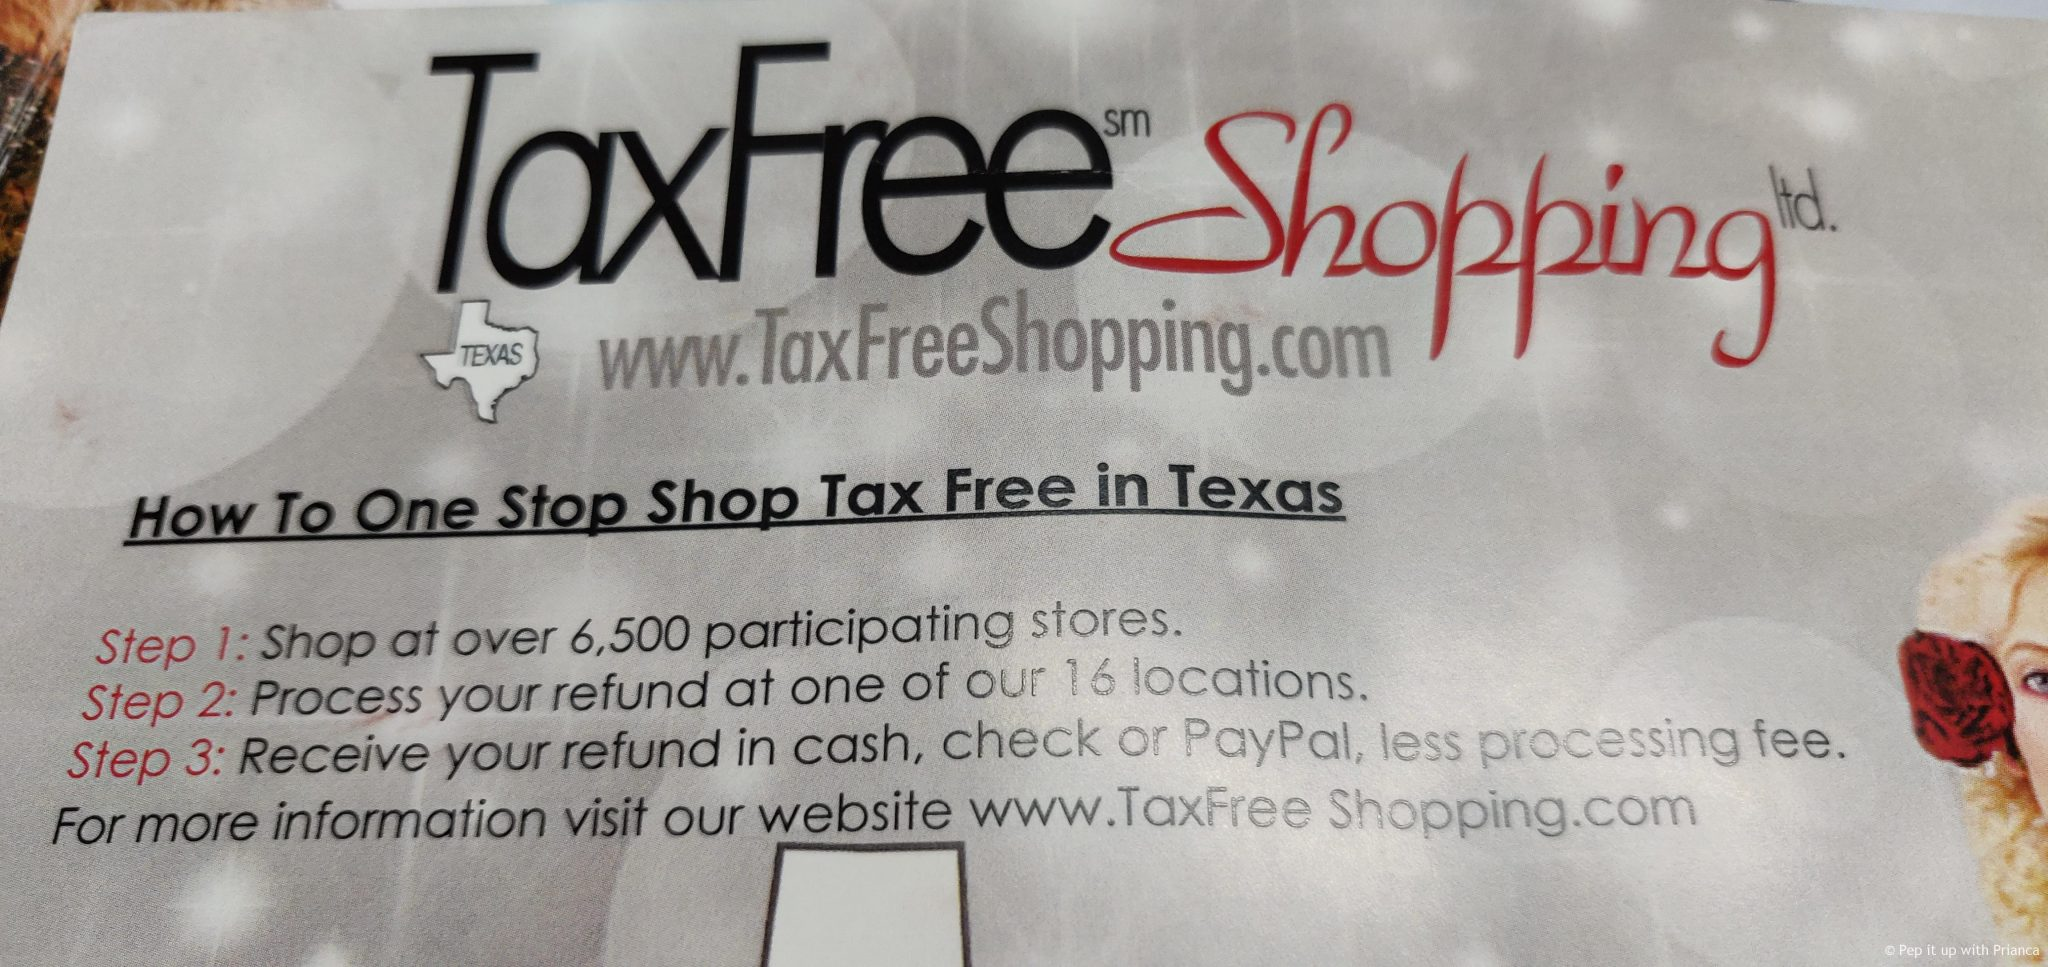 tax fee shopping in texas - Brand USA Organizes India Travel Mission - Experience the Best of USA with Go USA